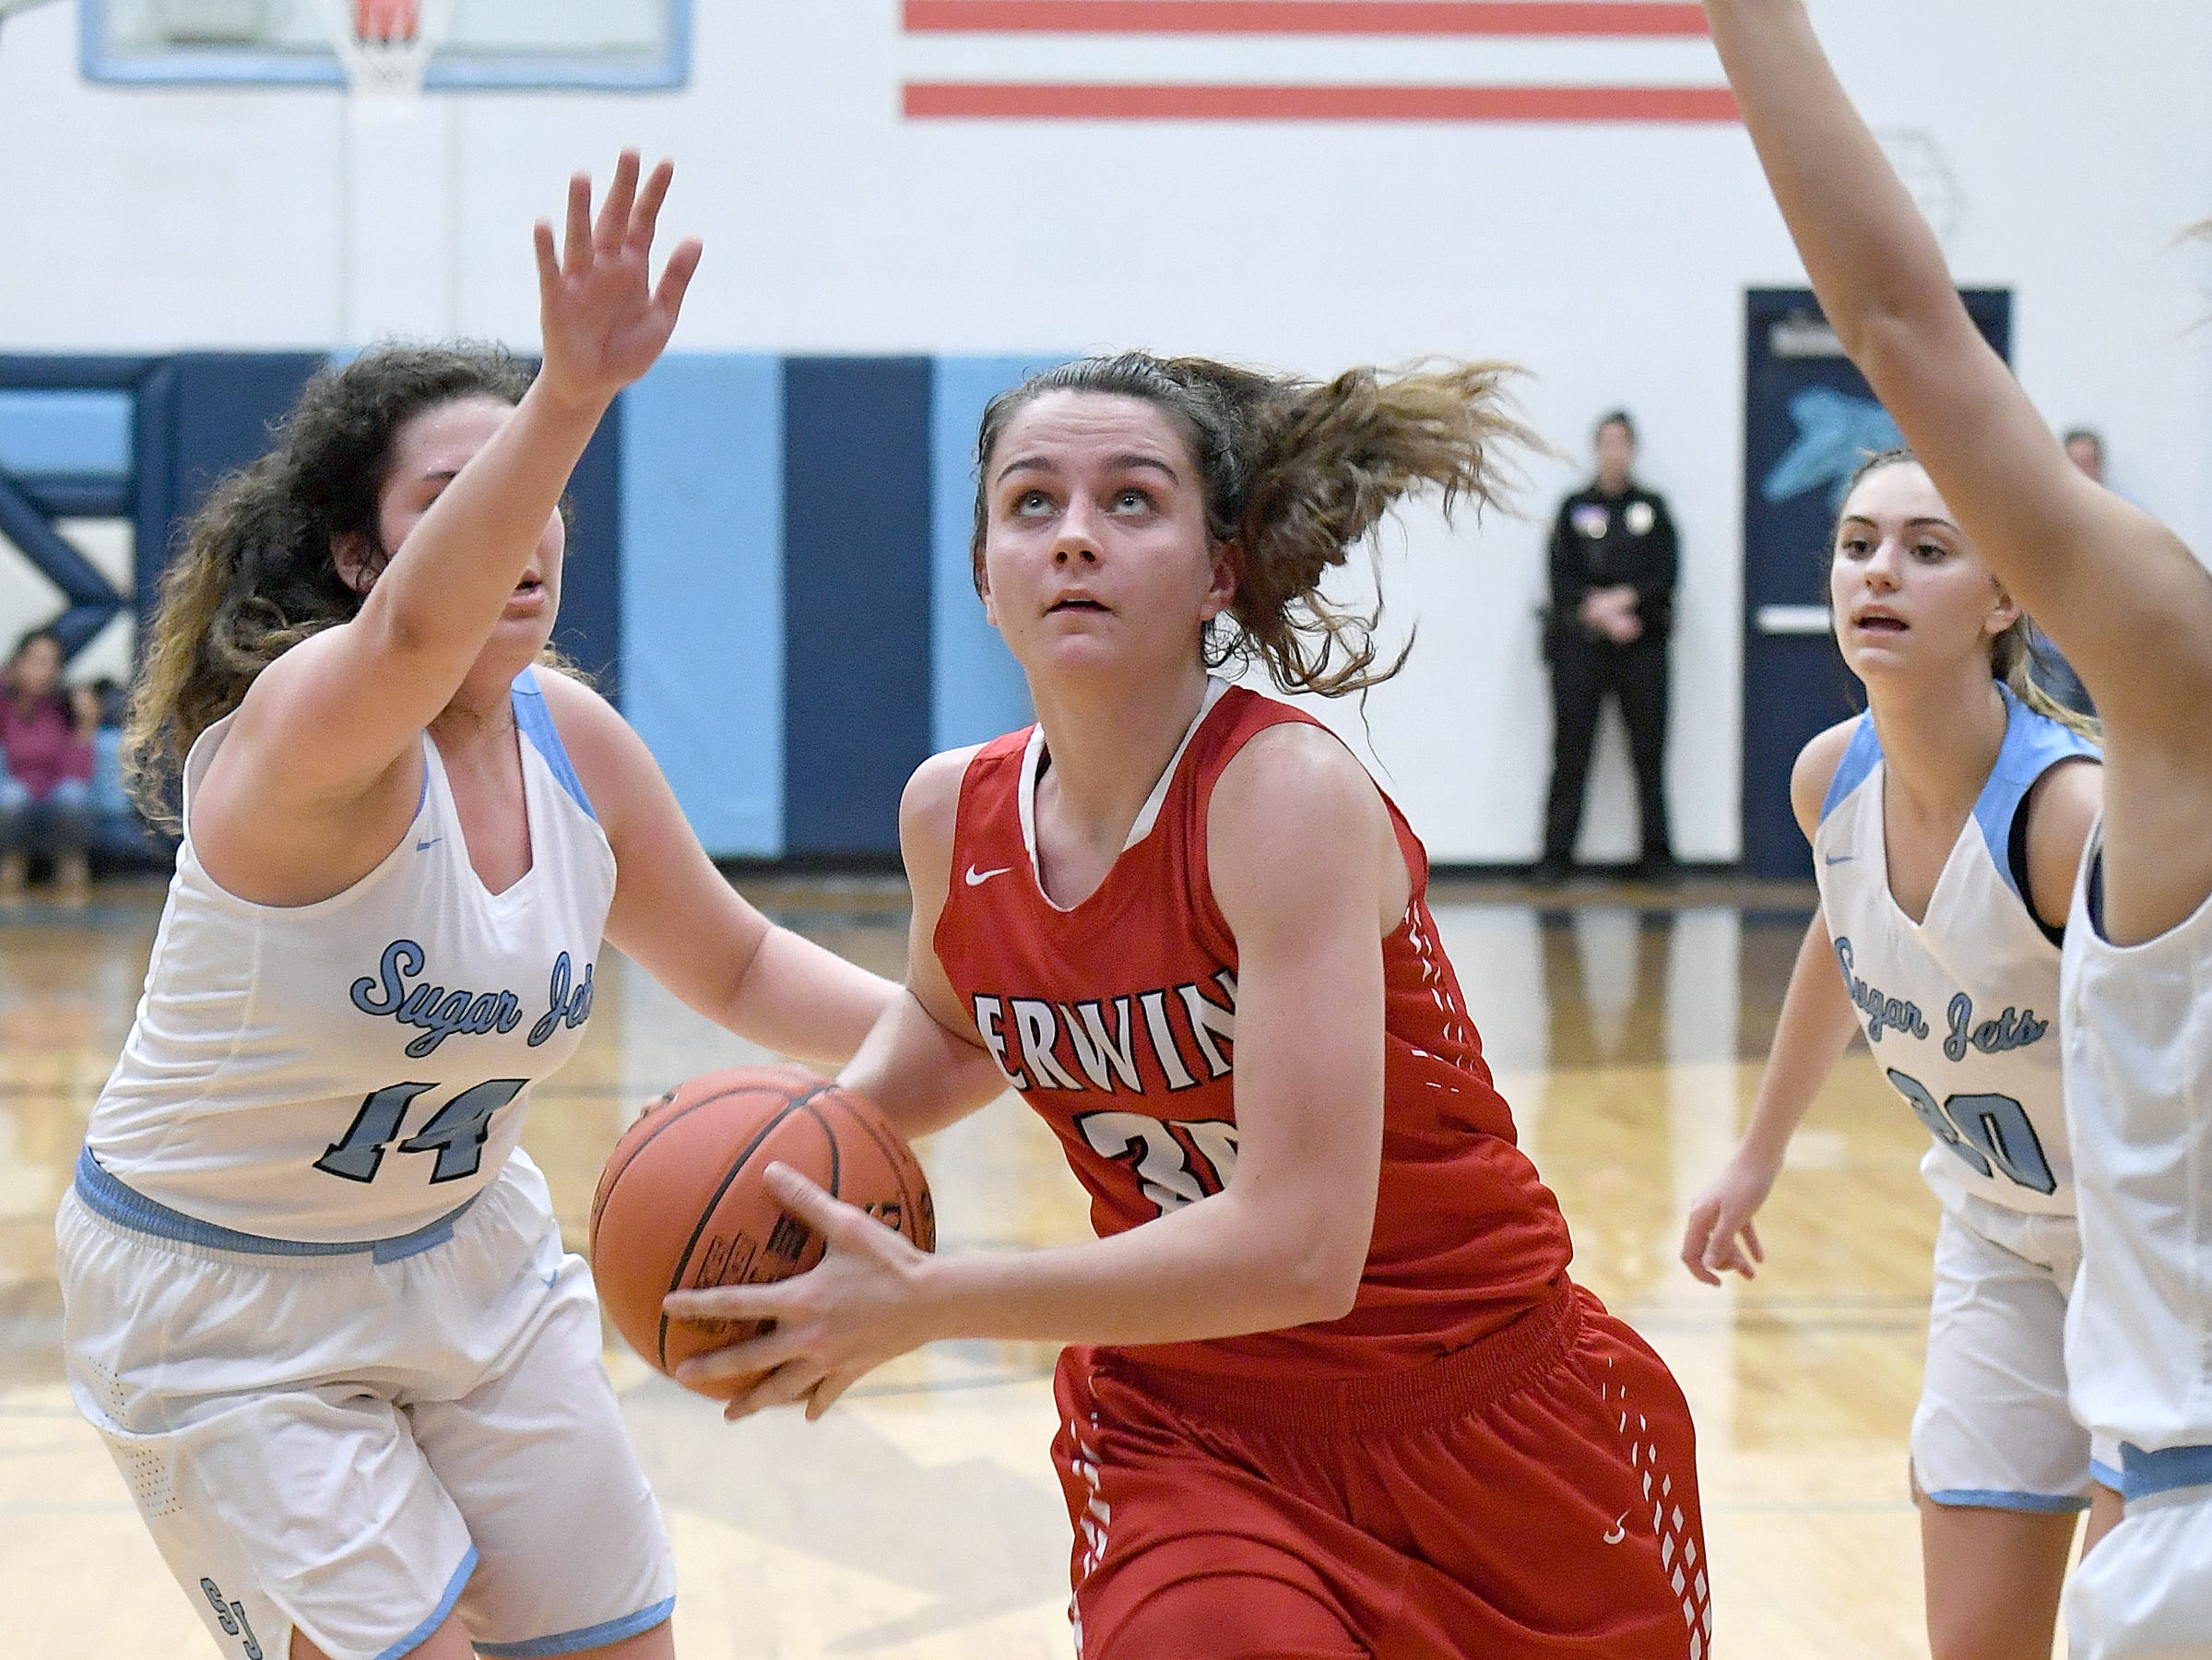 Erwin's Kaitlyn Messer charges toward the net against Enka during their game at Enka High School on Jan. 8, 2019. The Lady Warriors defeated the Sugar Jets 61-45.